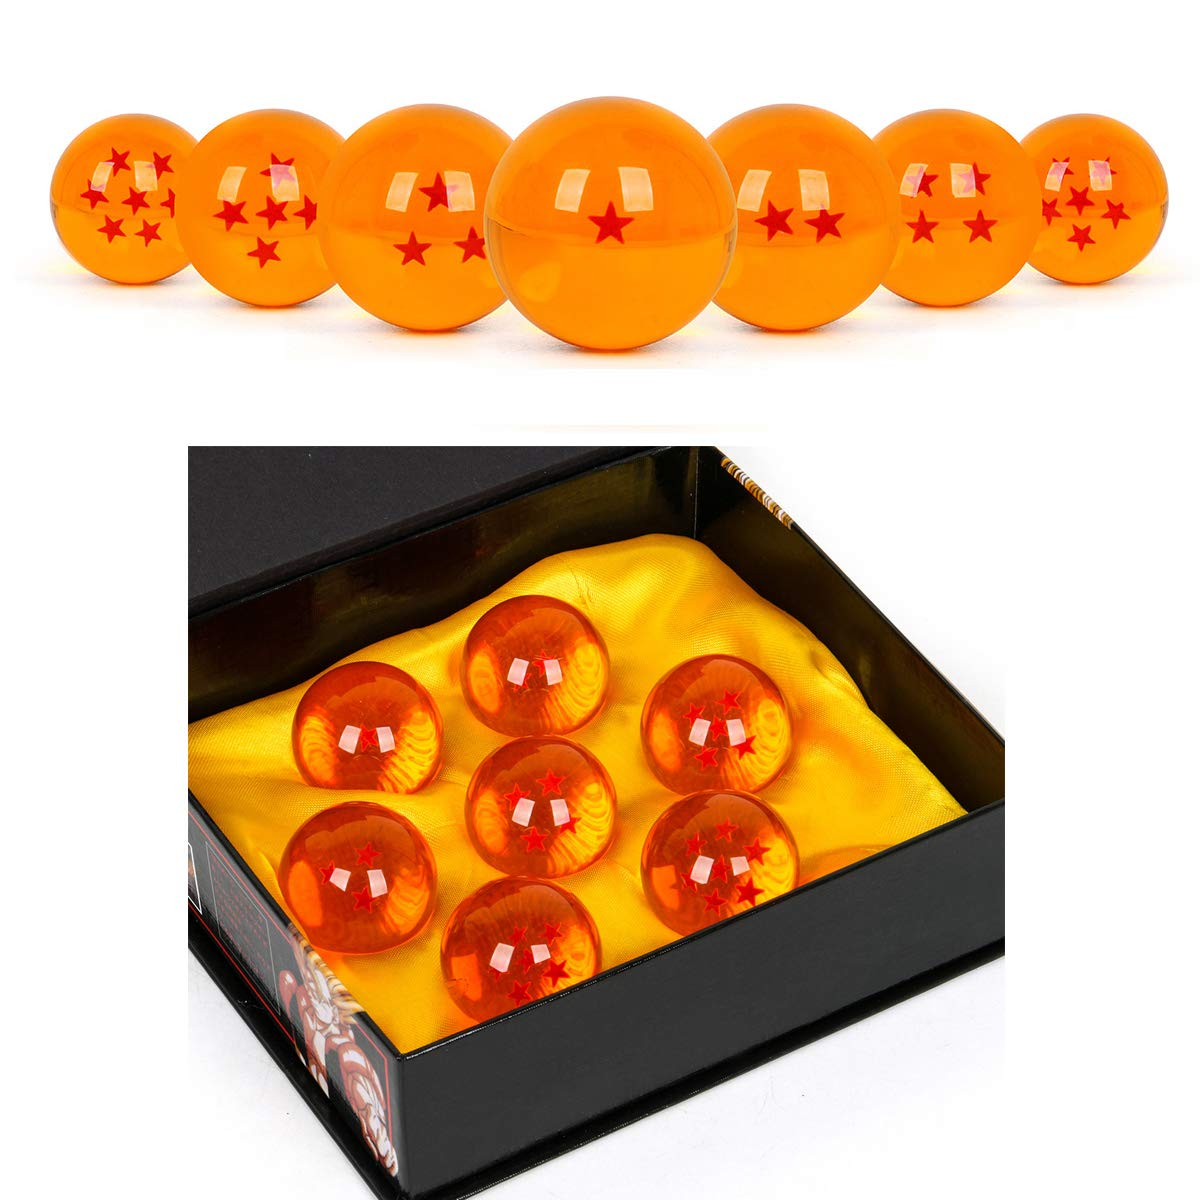 WeizhaonanCos Unisex Acrylic Resin Transparent Stars Balls Glass Ball Dragon Ball Cosplay Props Kids Play Toy Gift Set of 7pcs 43mm/1.7 in in Diameter (Orange) by WeizhaonanCos (Image #1)